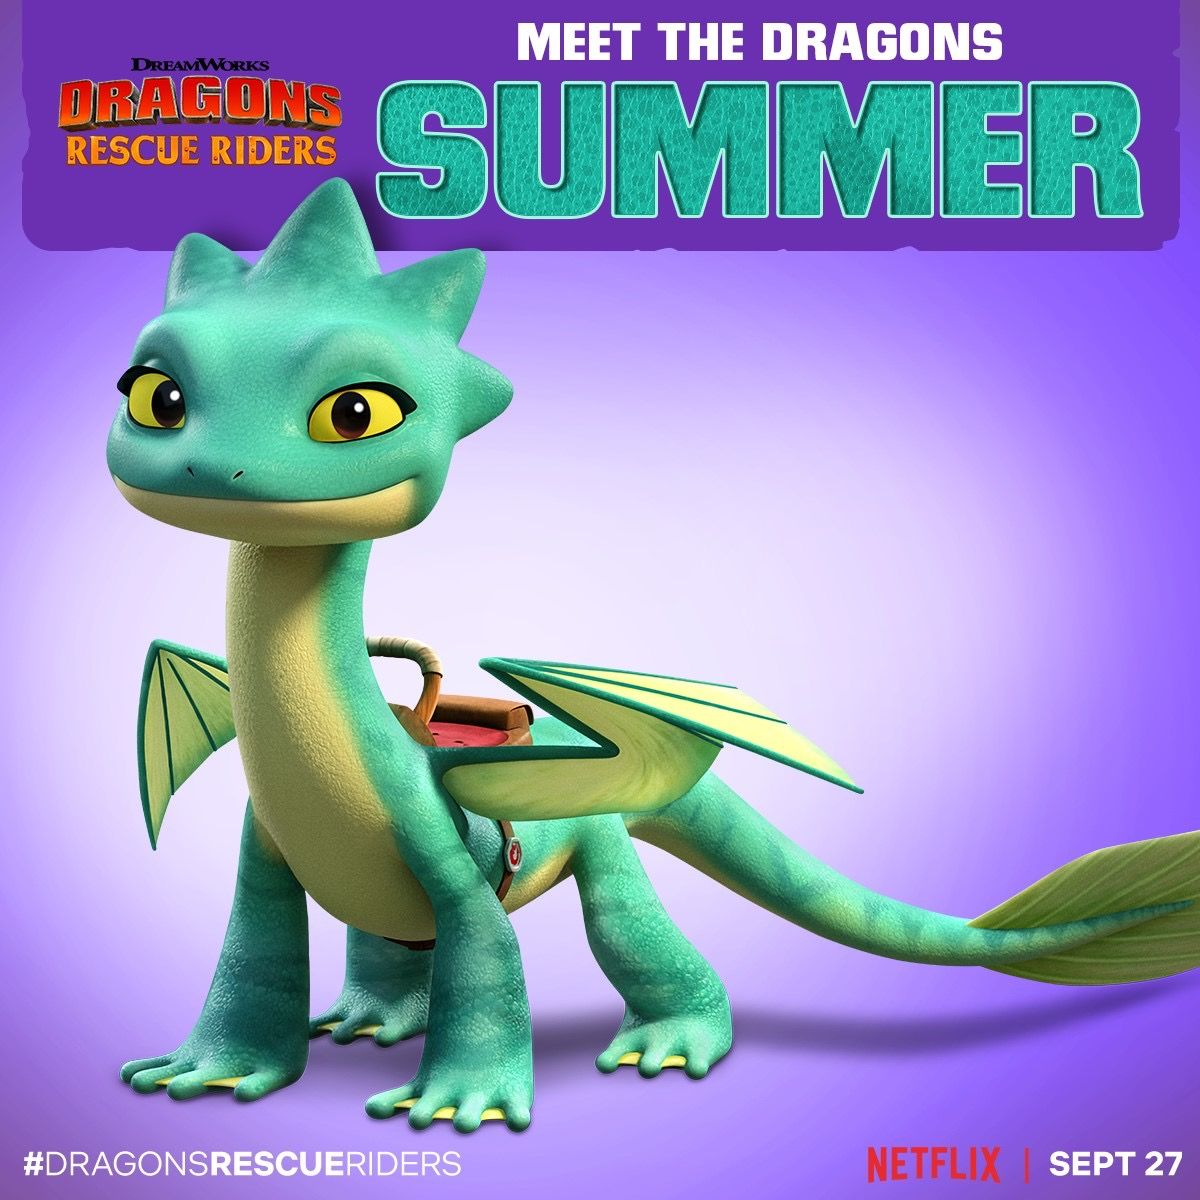 Pin By Sarah Bopp On Dreamworks Dragons Rescue Riders 2019 How To Train Your Dragon Dragon Birthday Parties Dragon Birthday